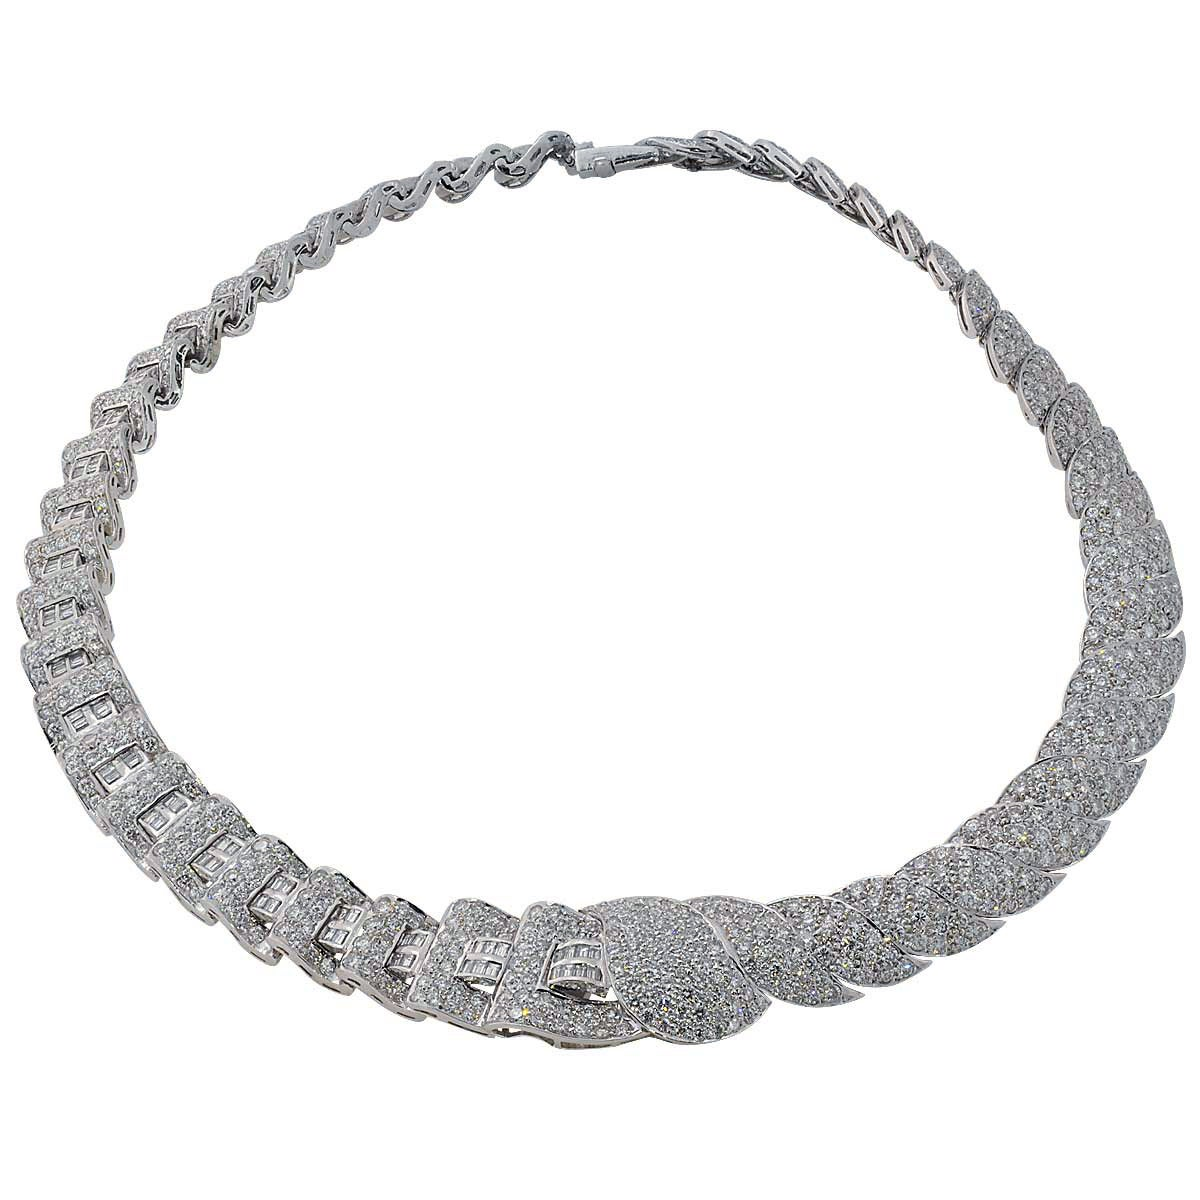 Exquisite Lady's Platinum Diamond Necklace with 1486 Mix Cut Diamonds Weighing Approximately 32.5cts Adorn this Beautiful Example of Modern Day Precise Craftsmanship. The Bow Which Features a One Carat Emerald Cut Diamond can be Removed and Worn as